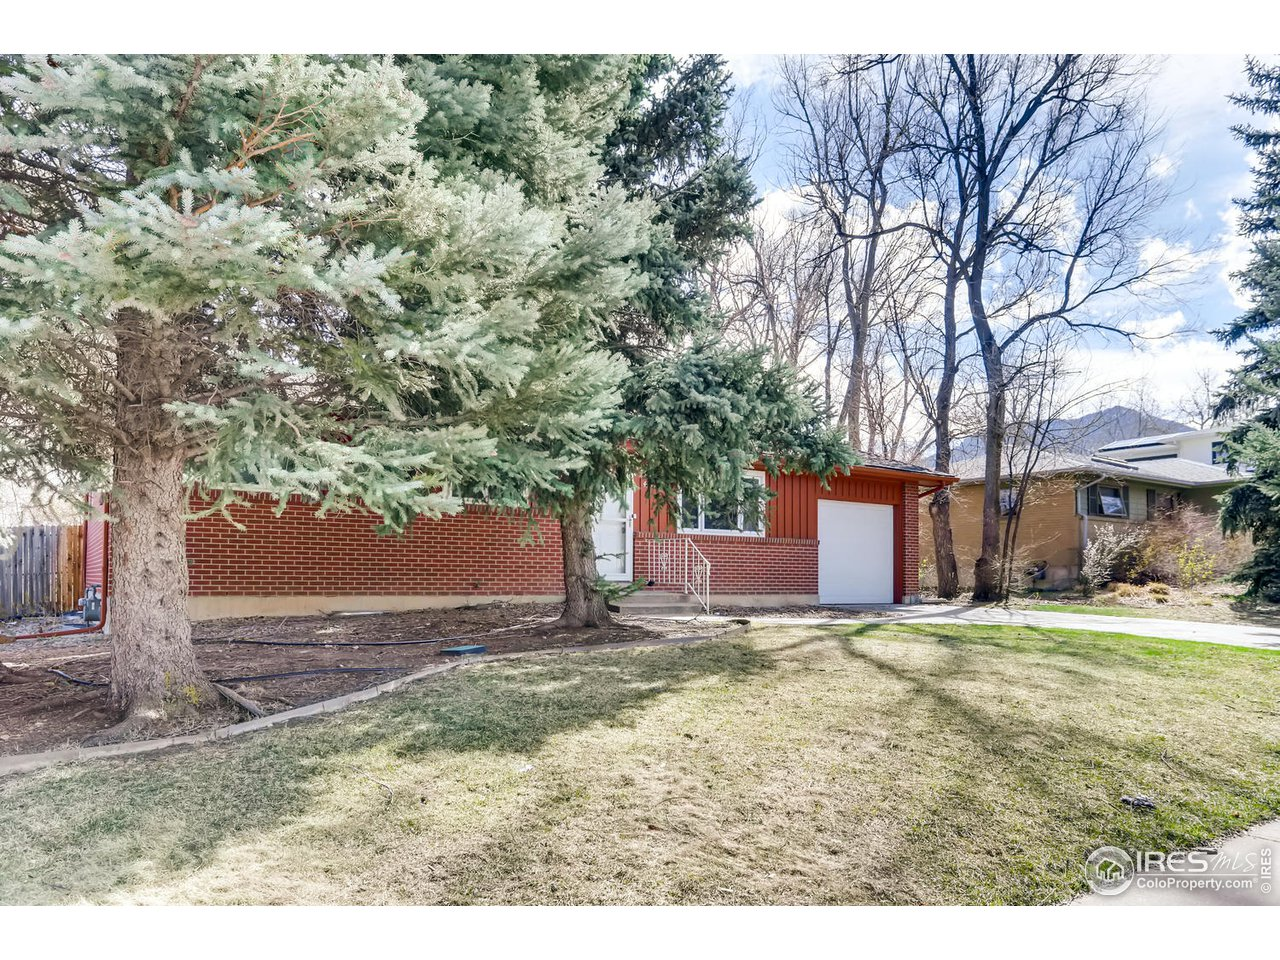 4490 Darley Ave, Boulder CO 80305